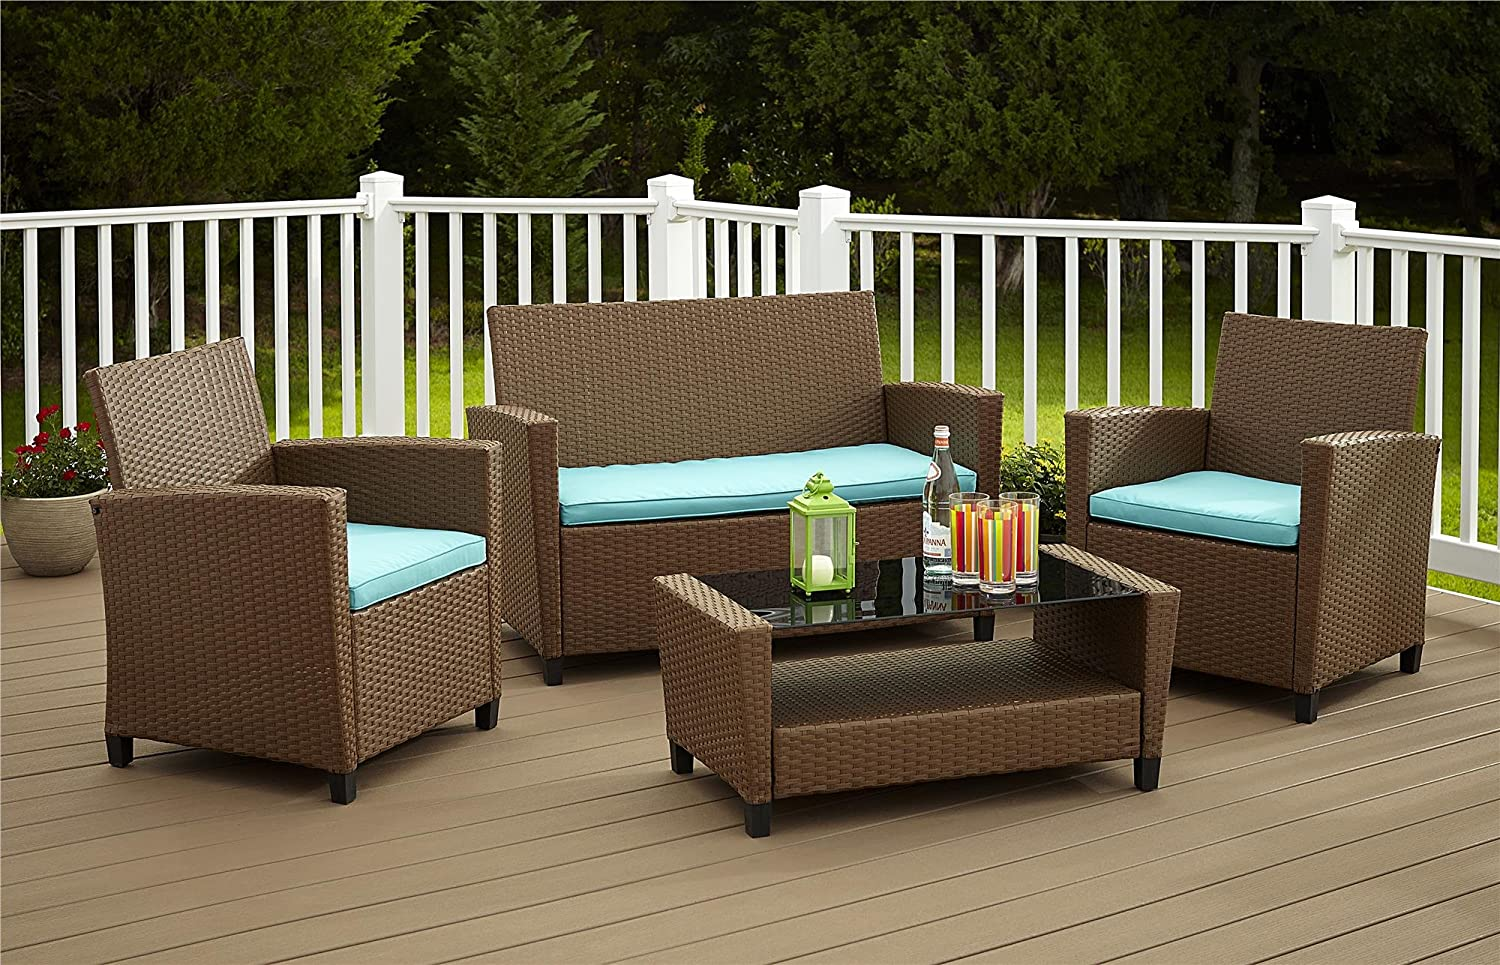 amazoncom cosco products 4 piece malmo resin wicker patio set brown with teal cushions kitchen dining